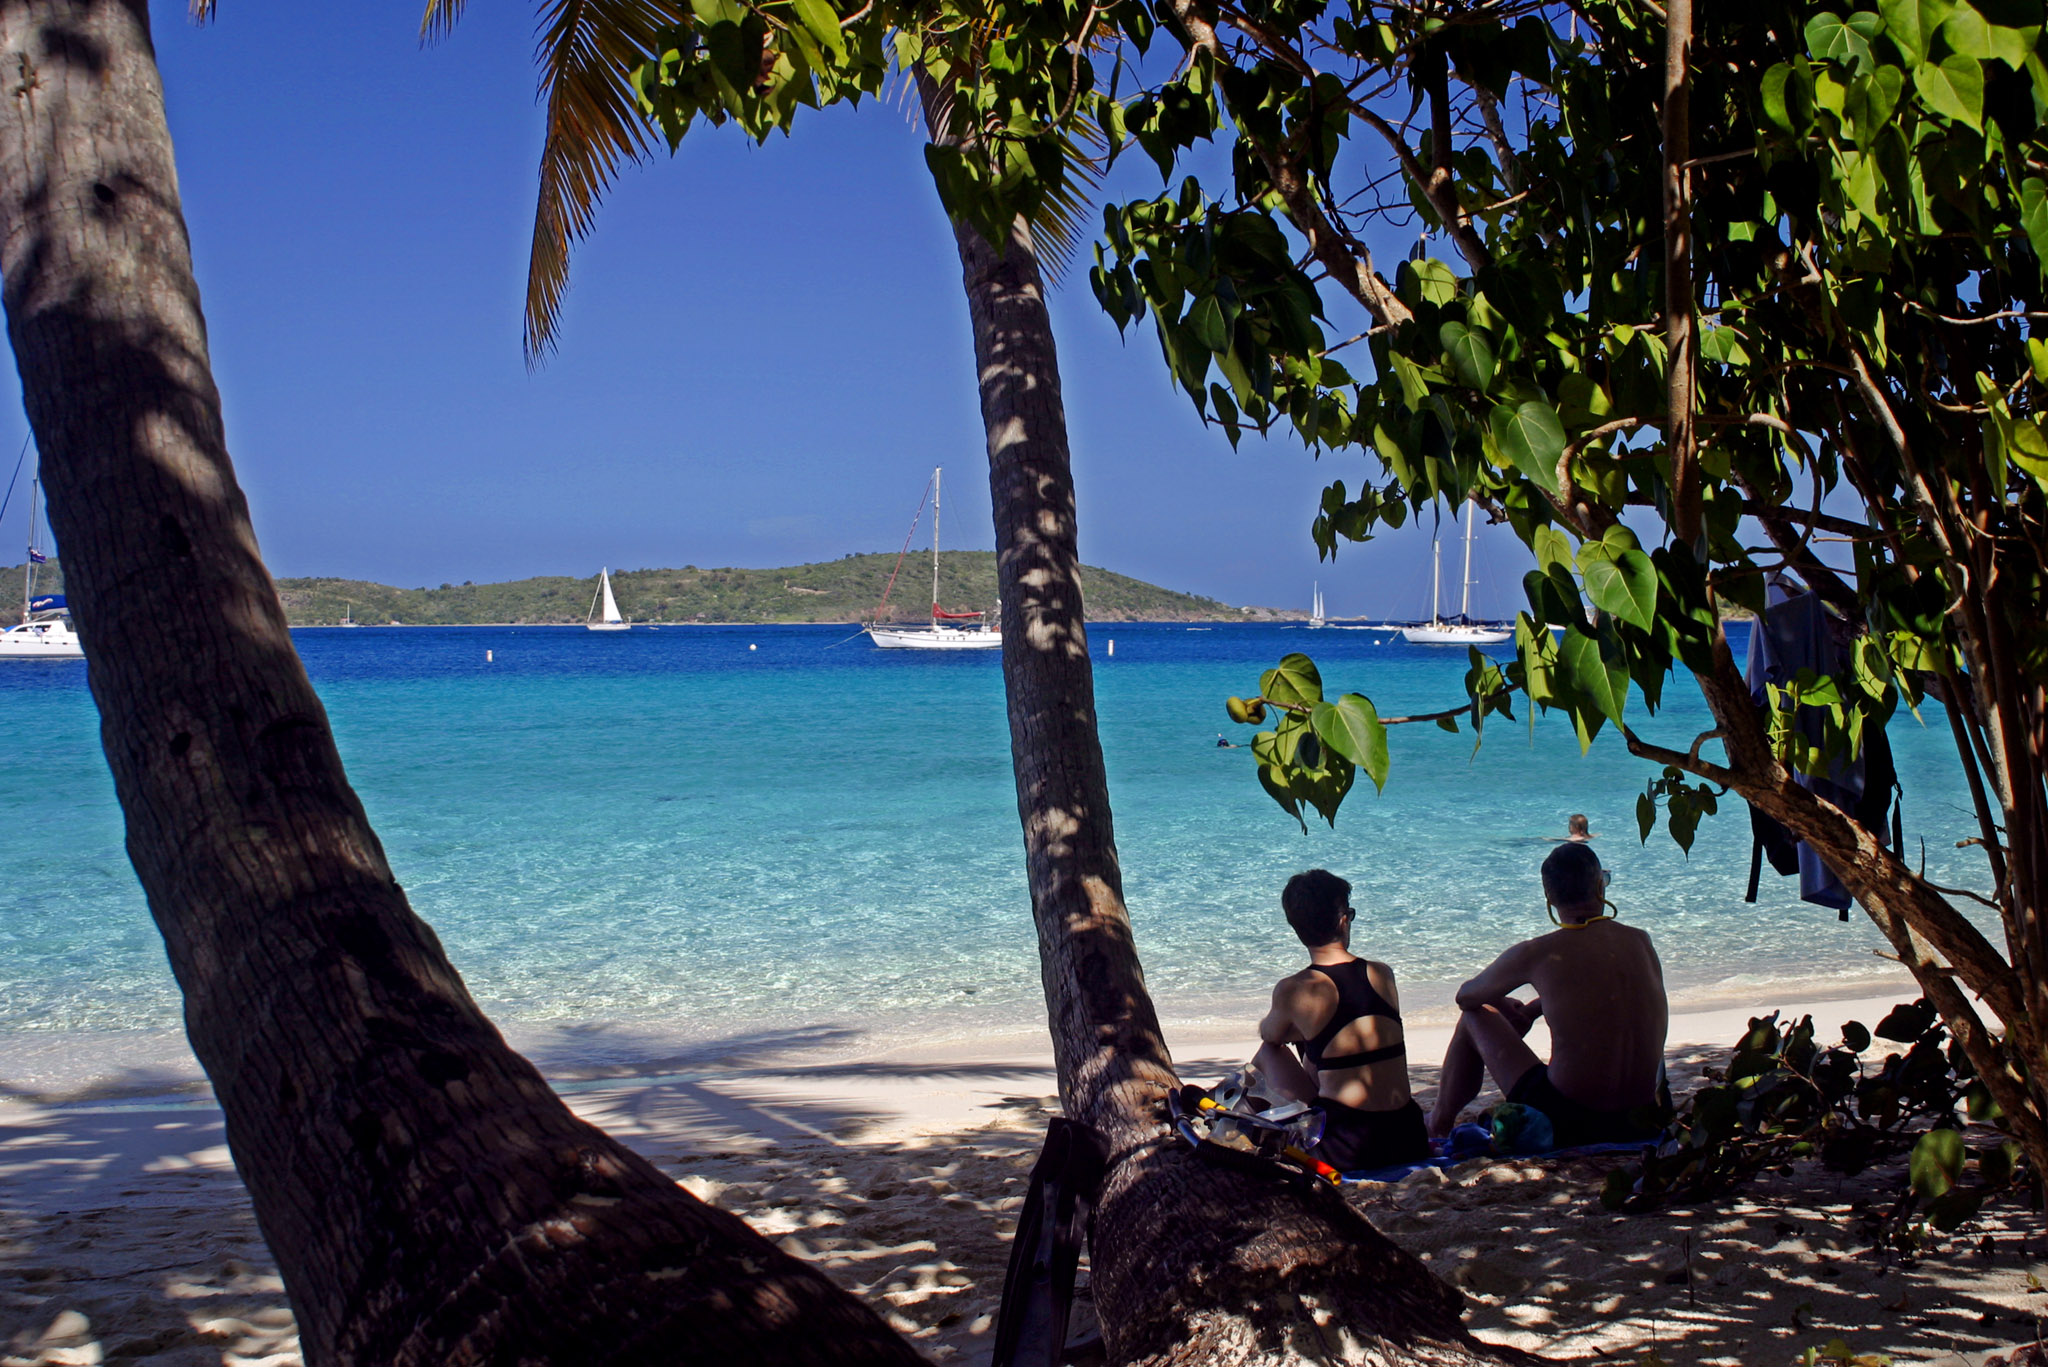 St. John USVI Beaches: Honeymoon